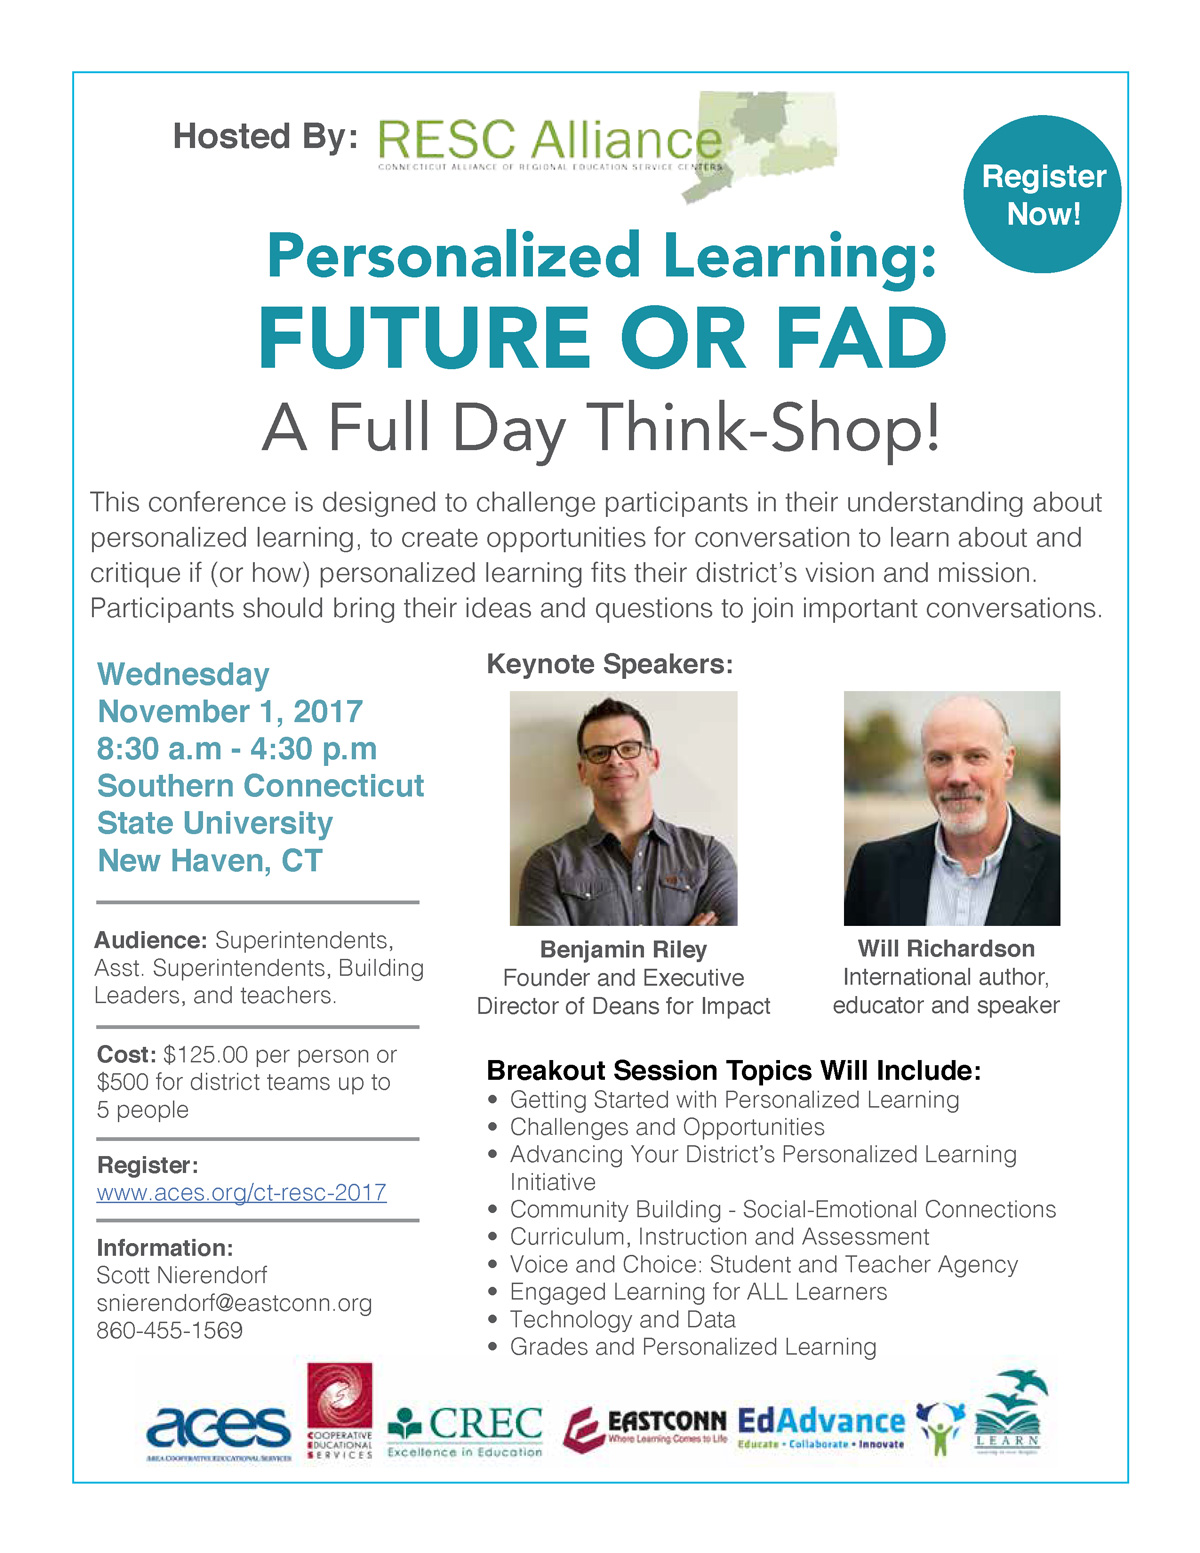 Personalized Learning: FUTURE OR FAD. A Full Day Think-Shop!